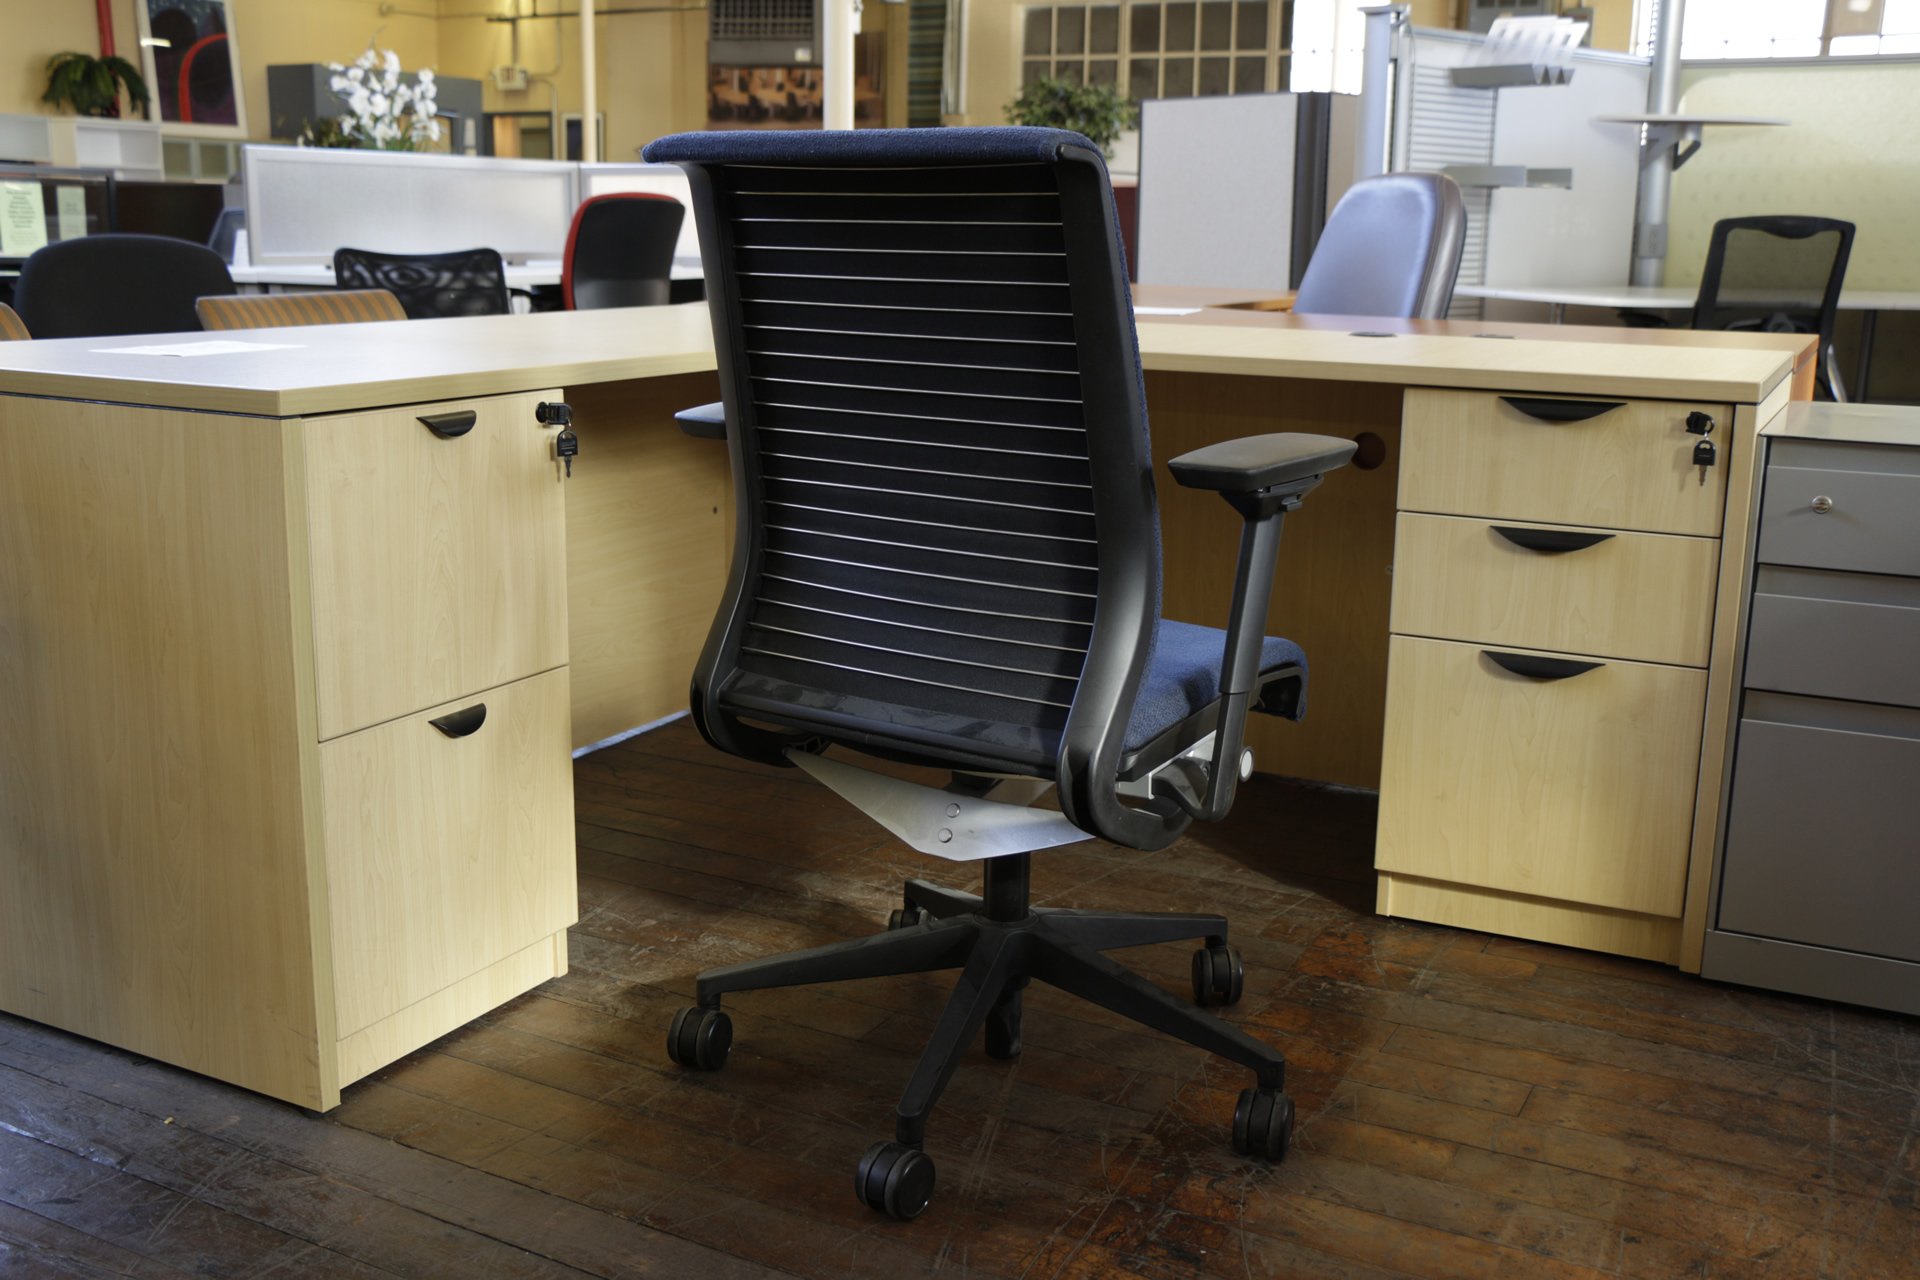 peartreeofficefurniture_peartreeofficefurniture_mg_1826.jpg